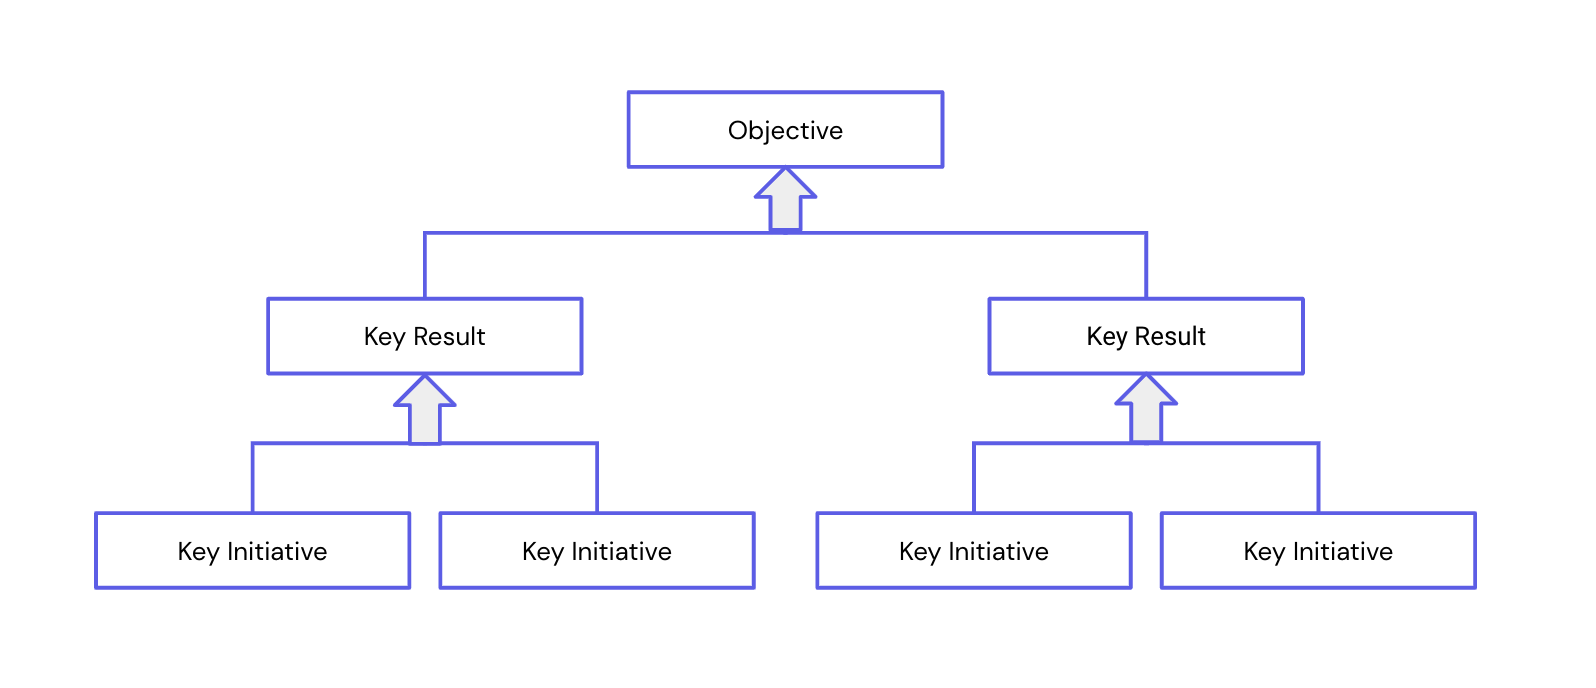 A diagram showing how goals are structured with key initiatives feeding into key results which then feed into the objective